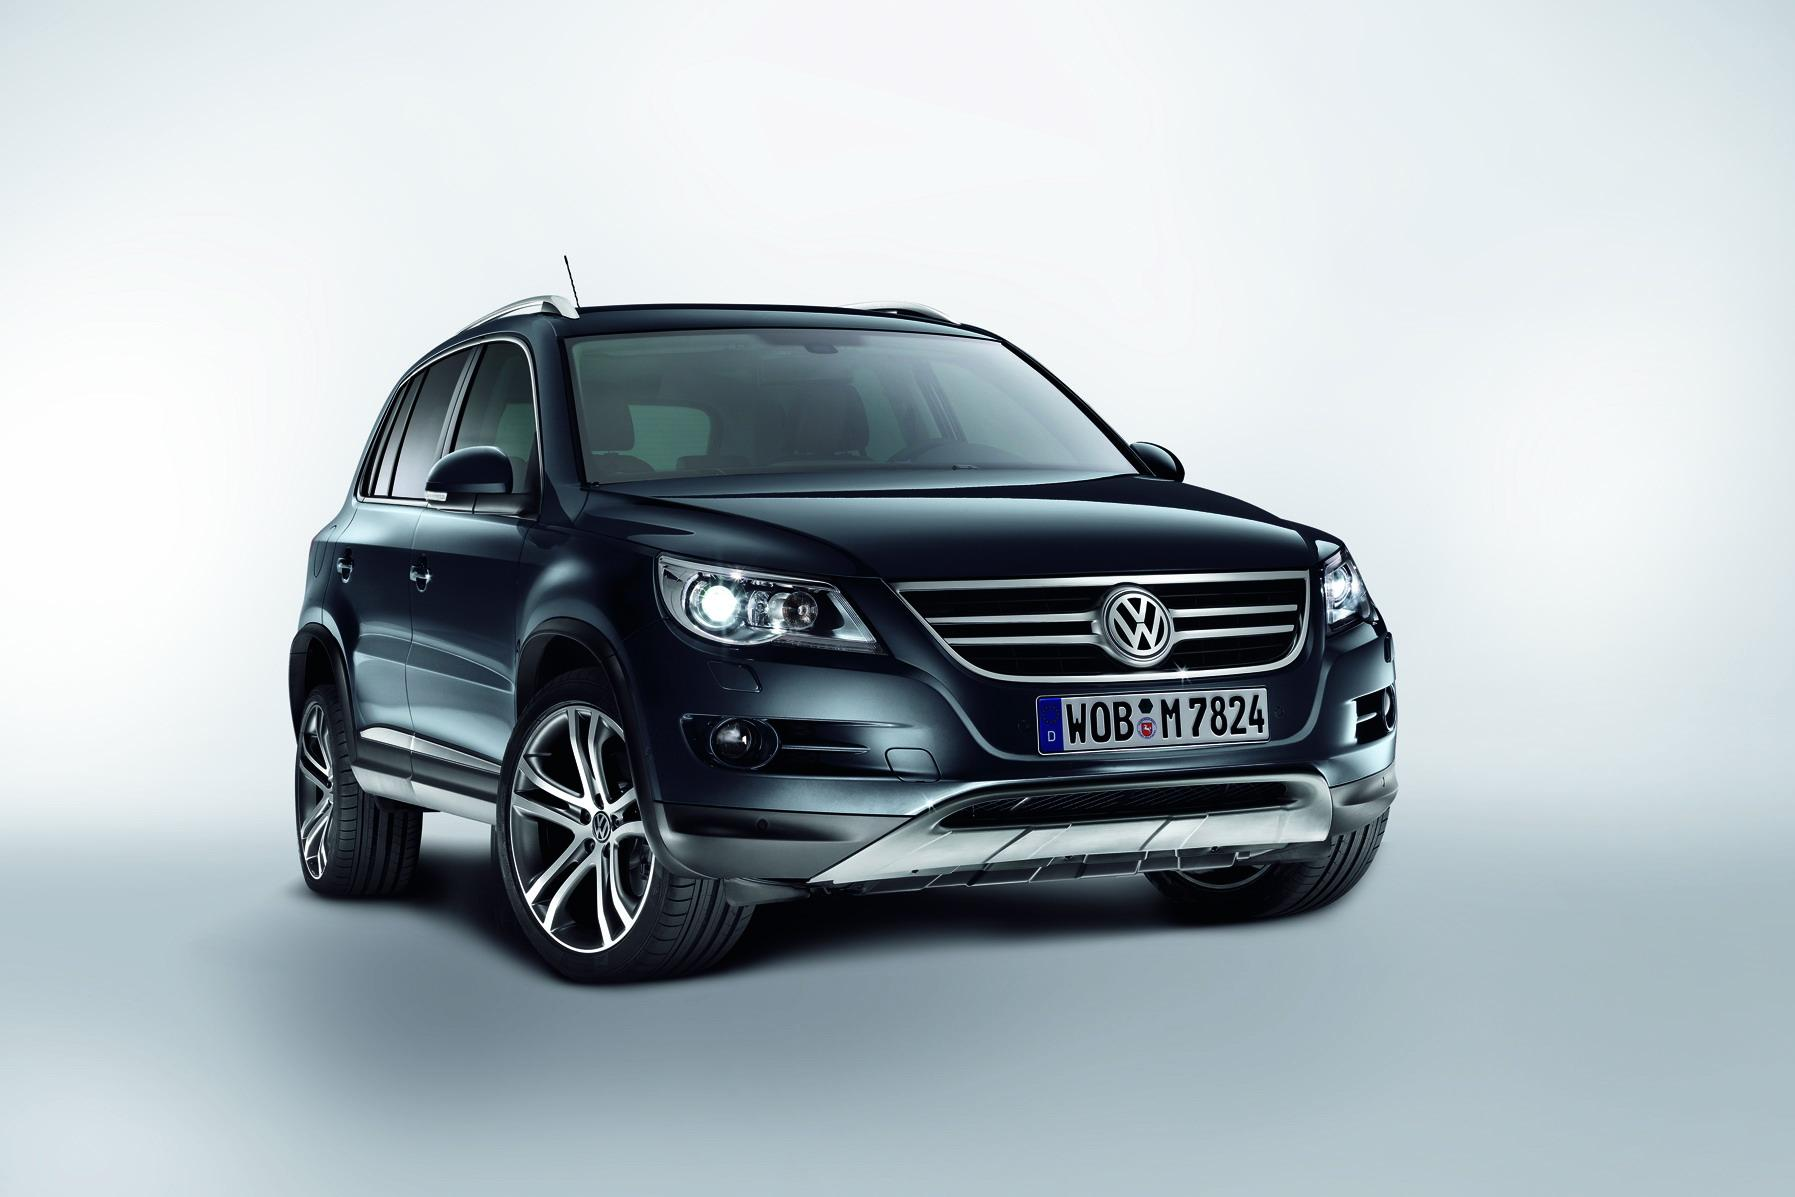 2010 volkswagen tiguan track avenue pictures photos wallpapers top speed. Black Bedroom Furniture Sets. Home Design Ideas